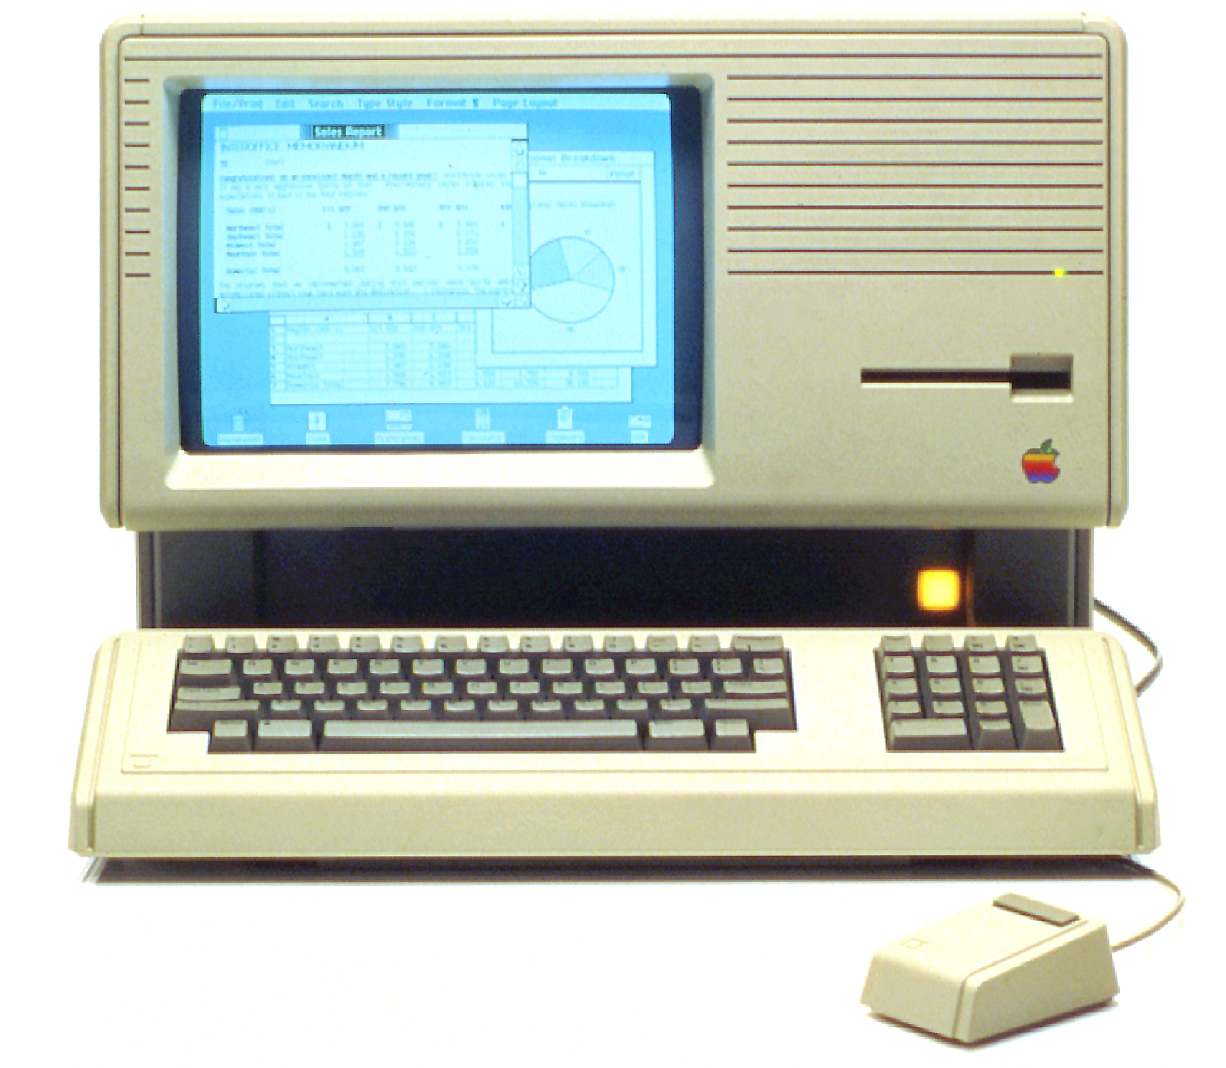 Apple Lisa (Macintosh XL)